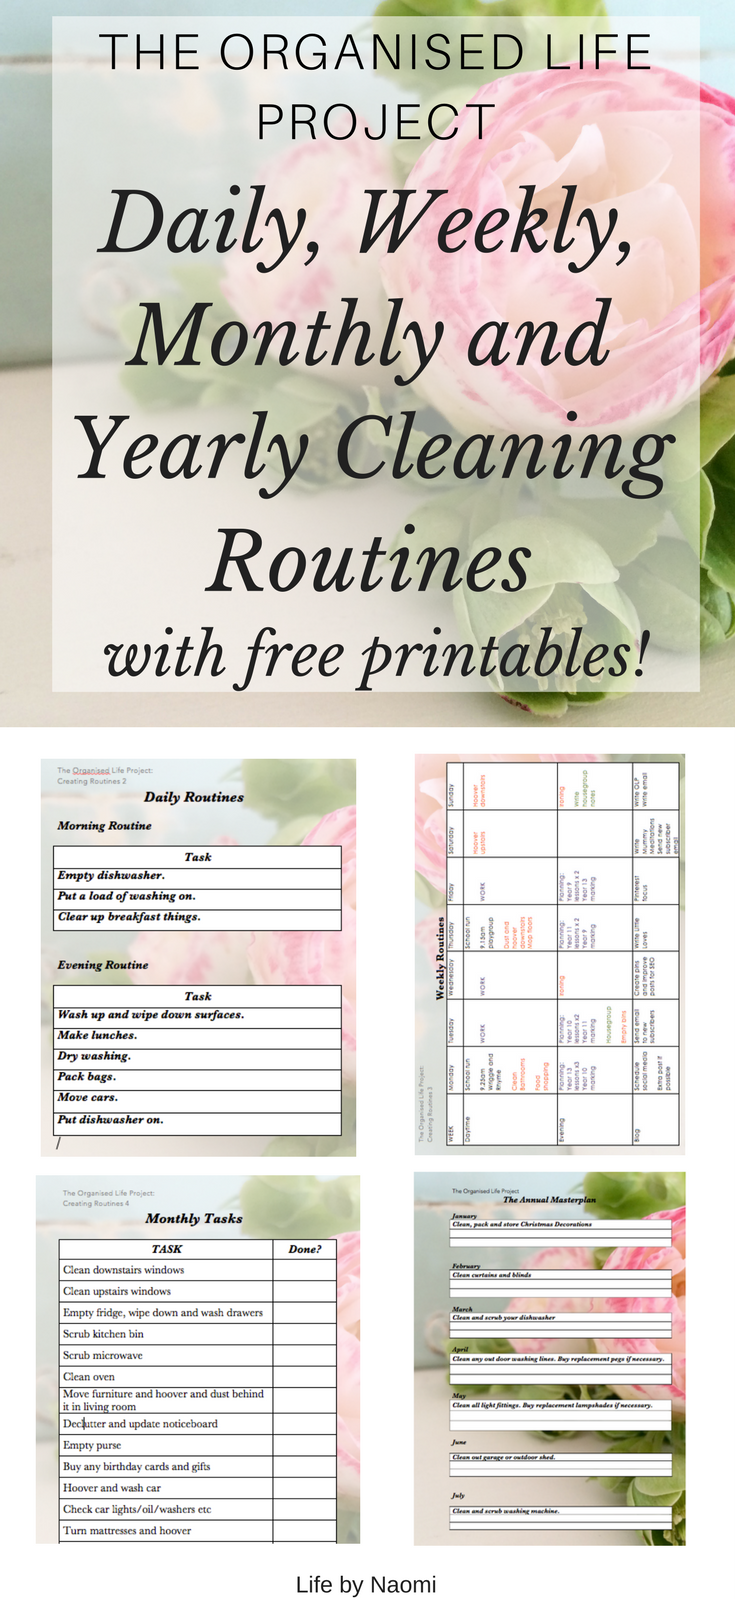 daily weekly monthly and annual cleaning and housework routines